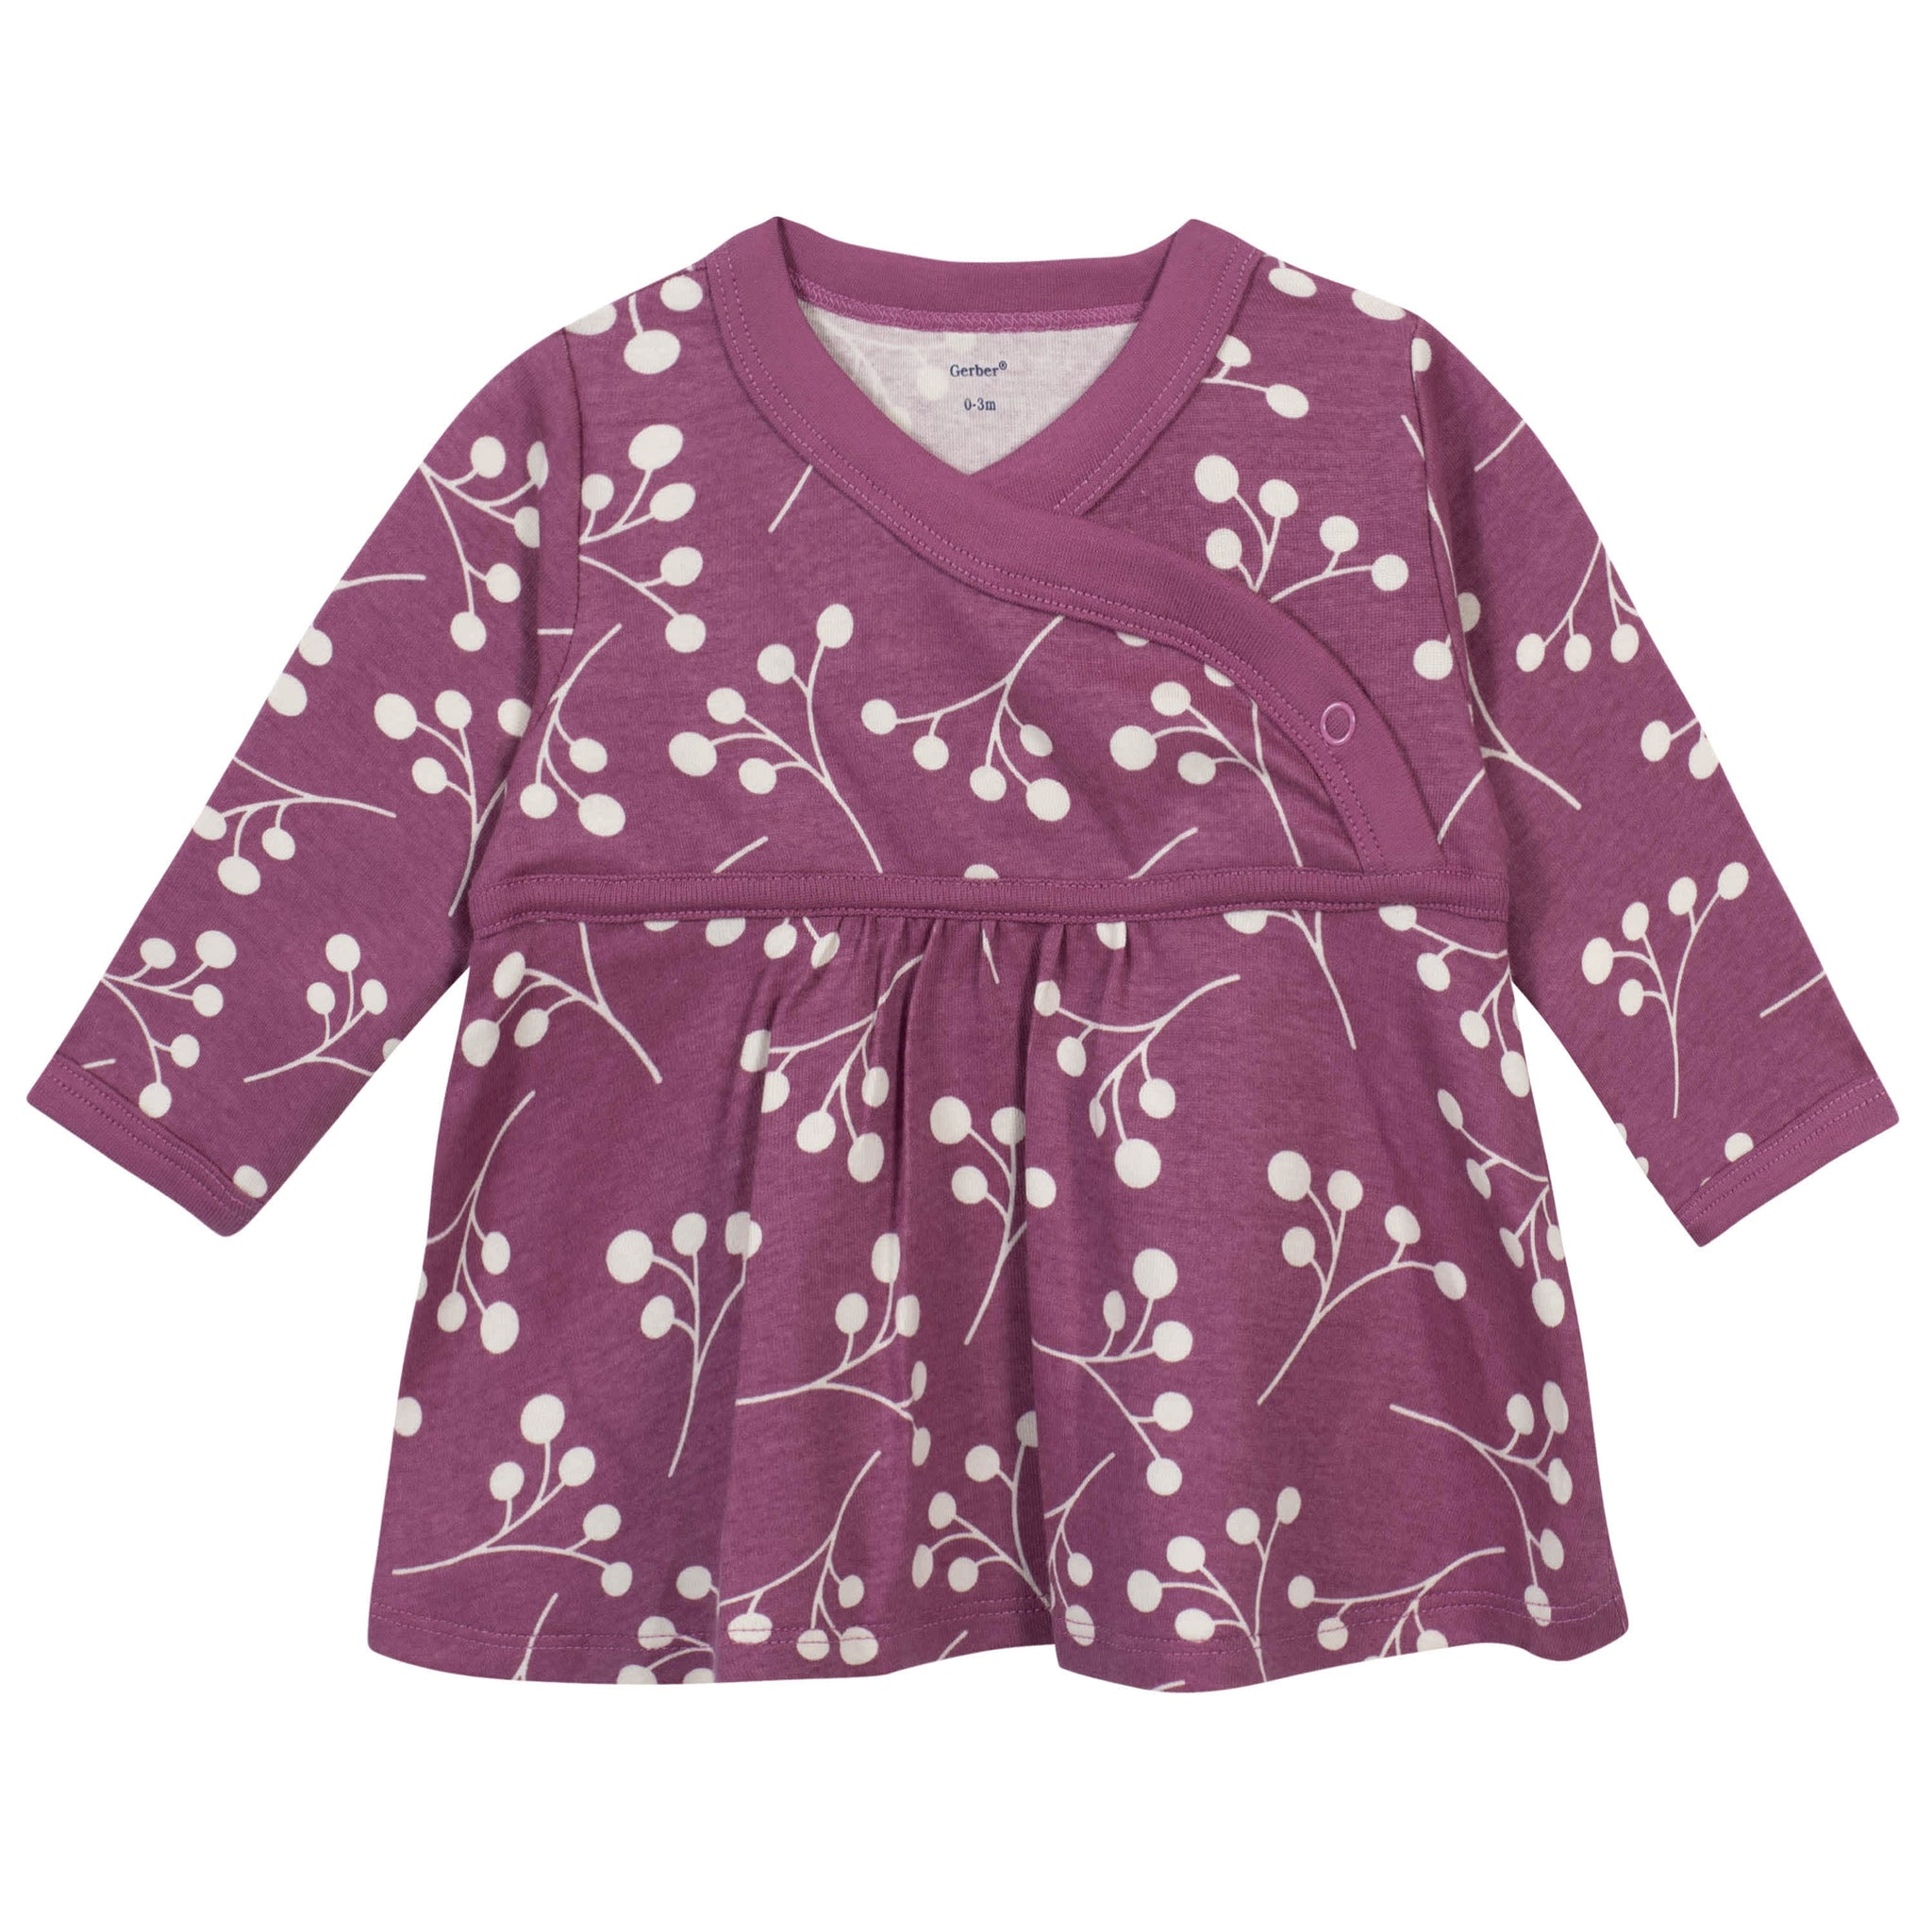 3-Piece Baby Girls Grow by Gerber® Floral Organic Shirt, Footed Pant and Cap Set-Gerber Childrenswear